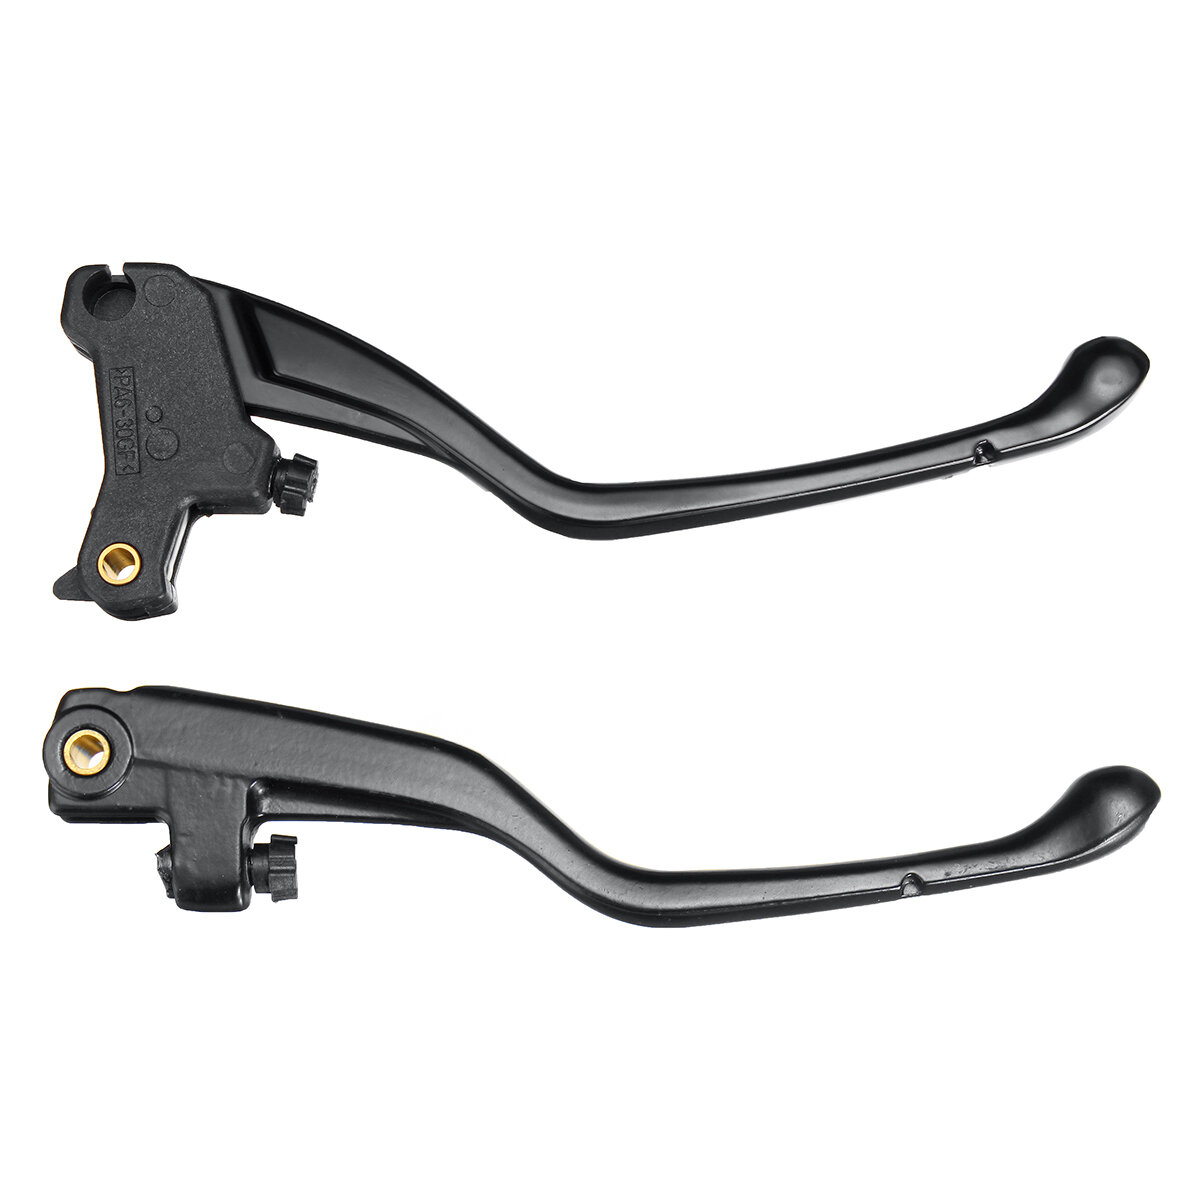 Motorcycle Alloy Clutch Brake Lever Set For BMW F800GS F800R F800S F800ST F800GT F700GS G650GS F650GS